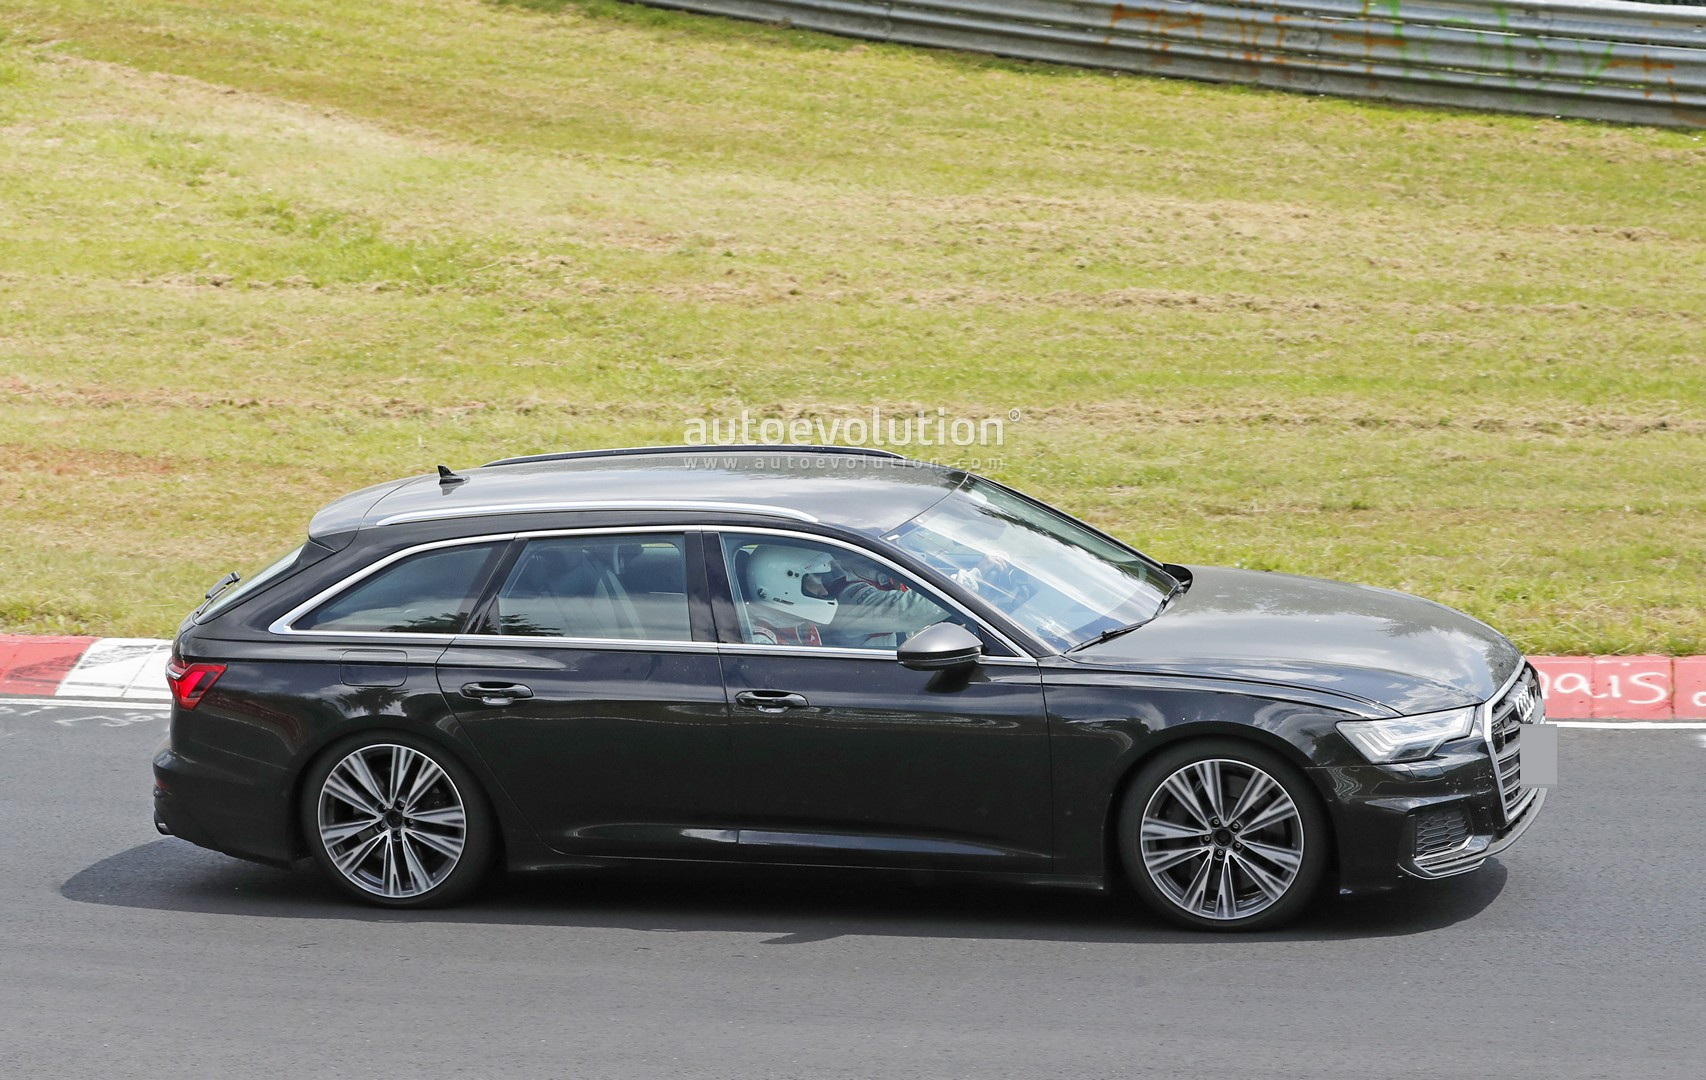 2020 Audi S6 Avant Leans Hard into Corners at the ...